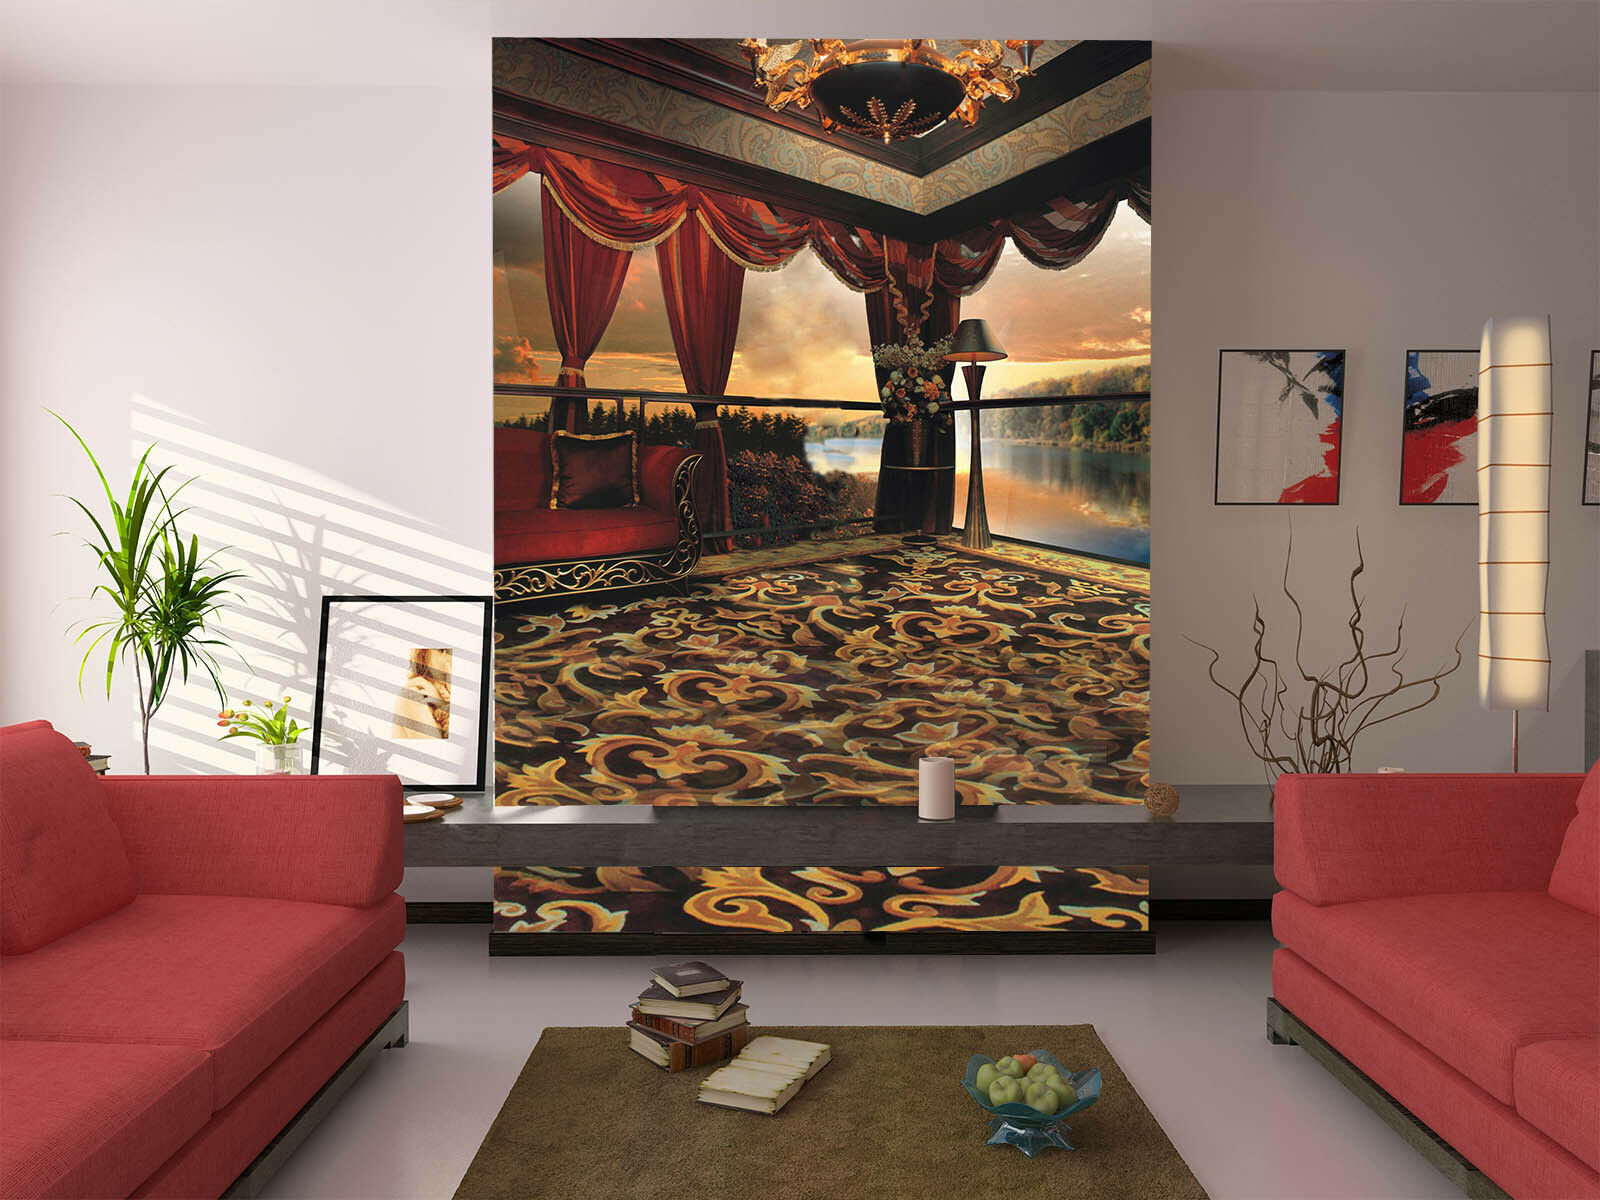 3D Balcony Sea 4010 Wallpaper Murals Wall Print Wall Mural AJ WALLPAPER UK Lemon